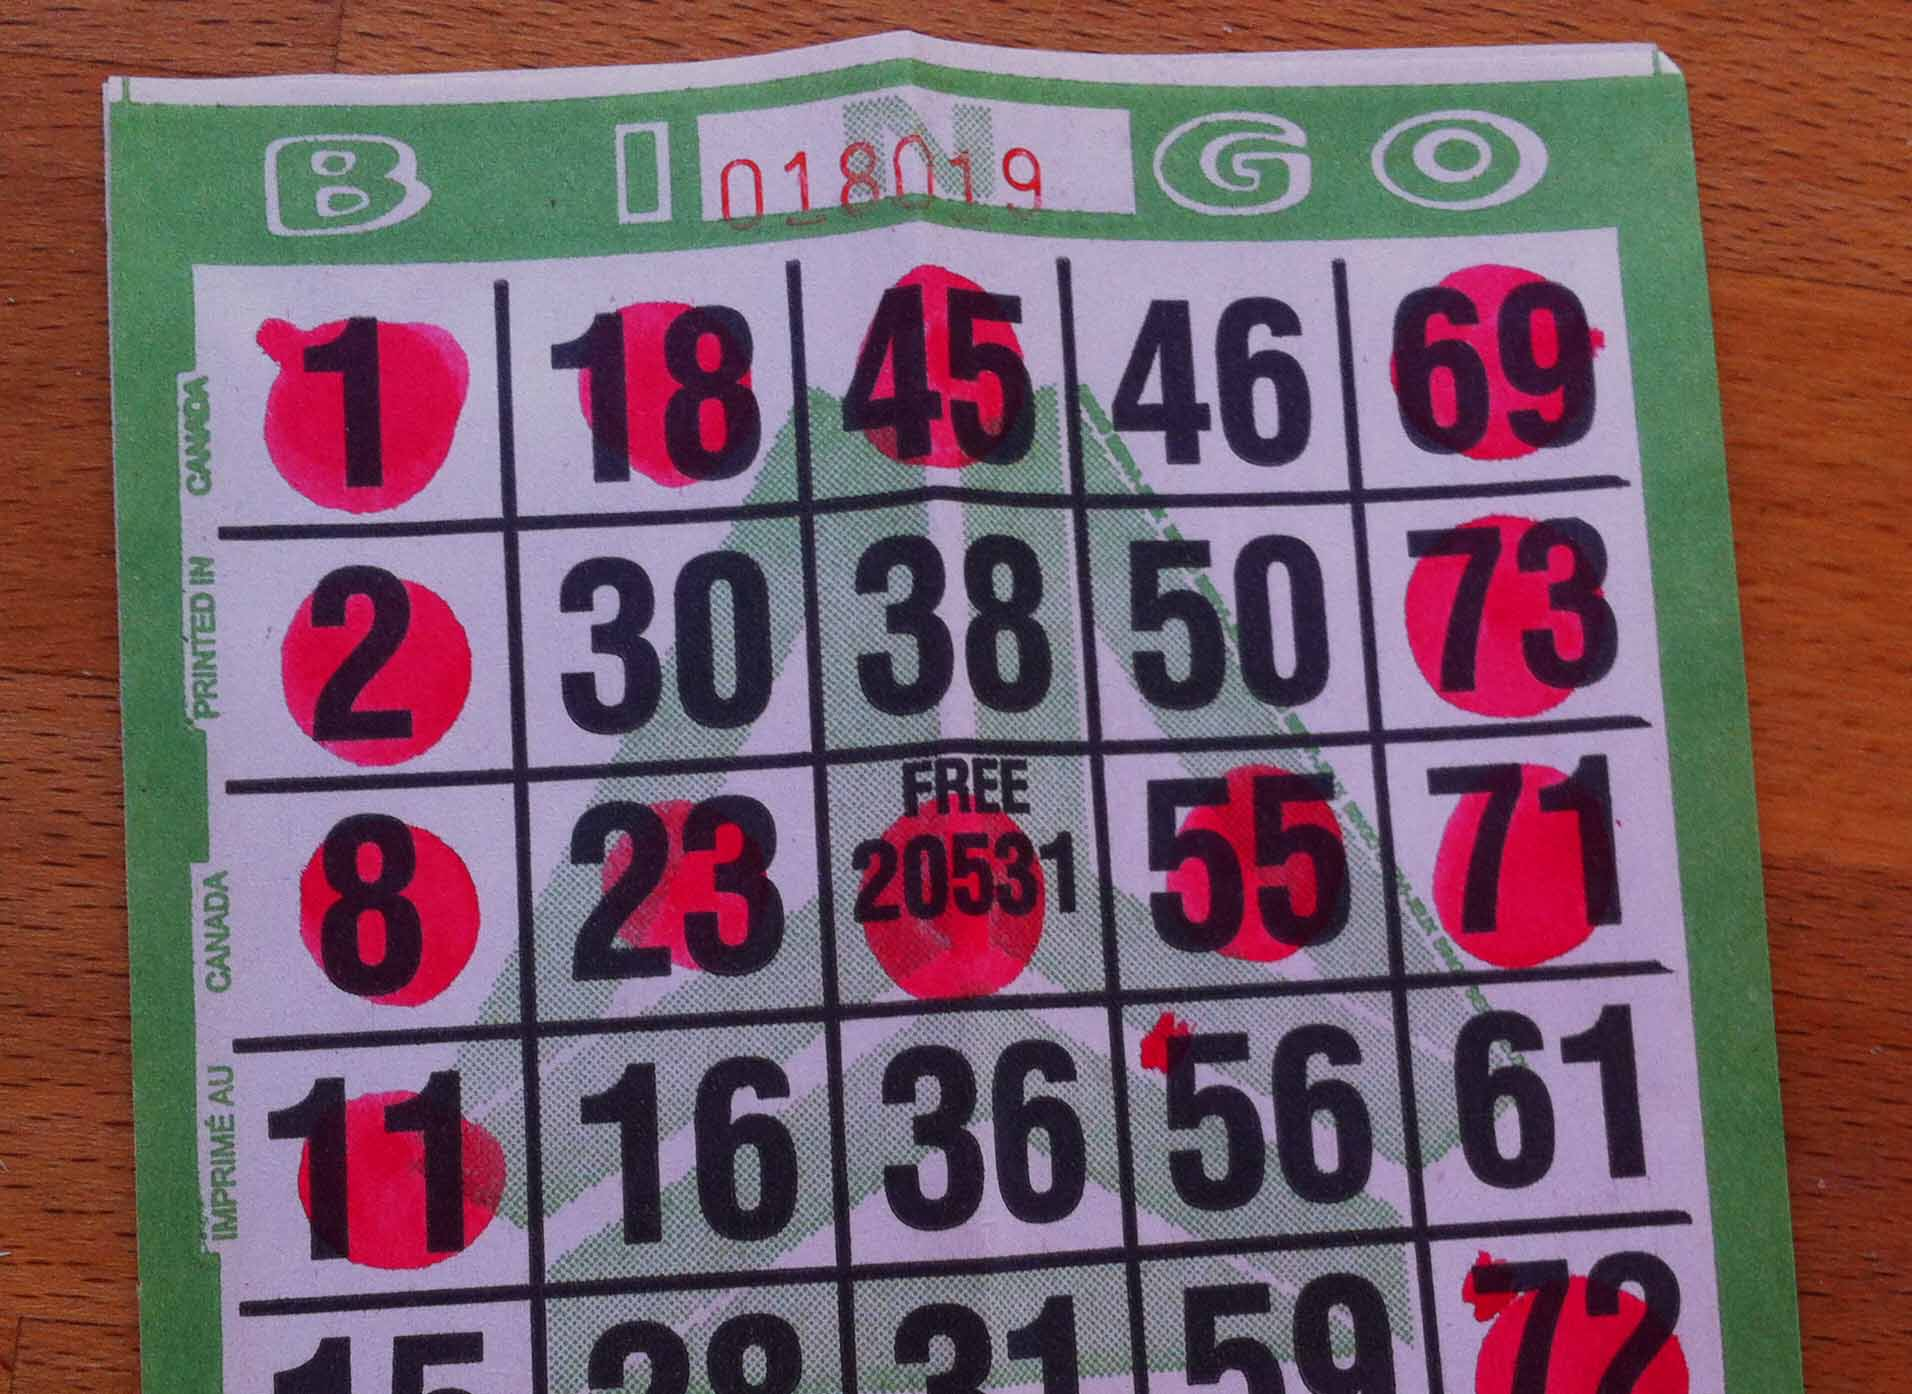 A Bingo ticket with a row of five, thanks to the joker in the middle of the ticket.